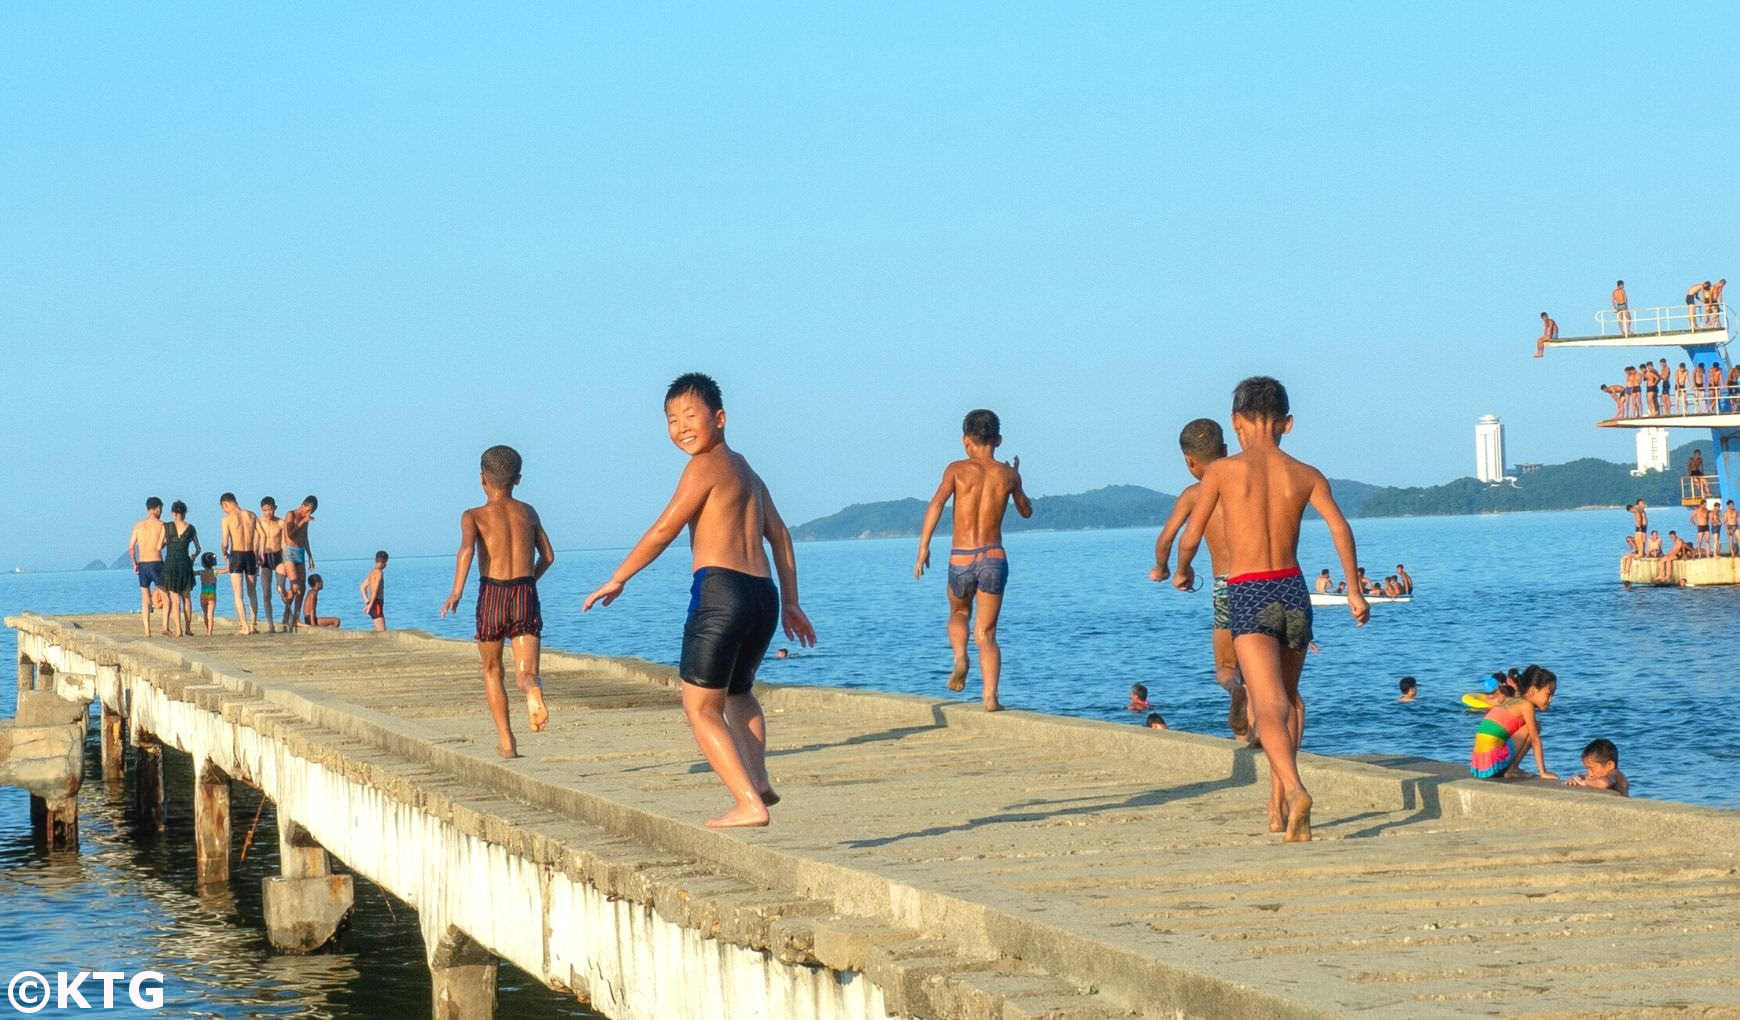 children at the beach in Wonsan in North Korea. DPRK trip arranged by KTG Tours